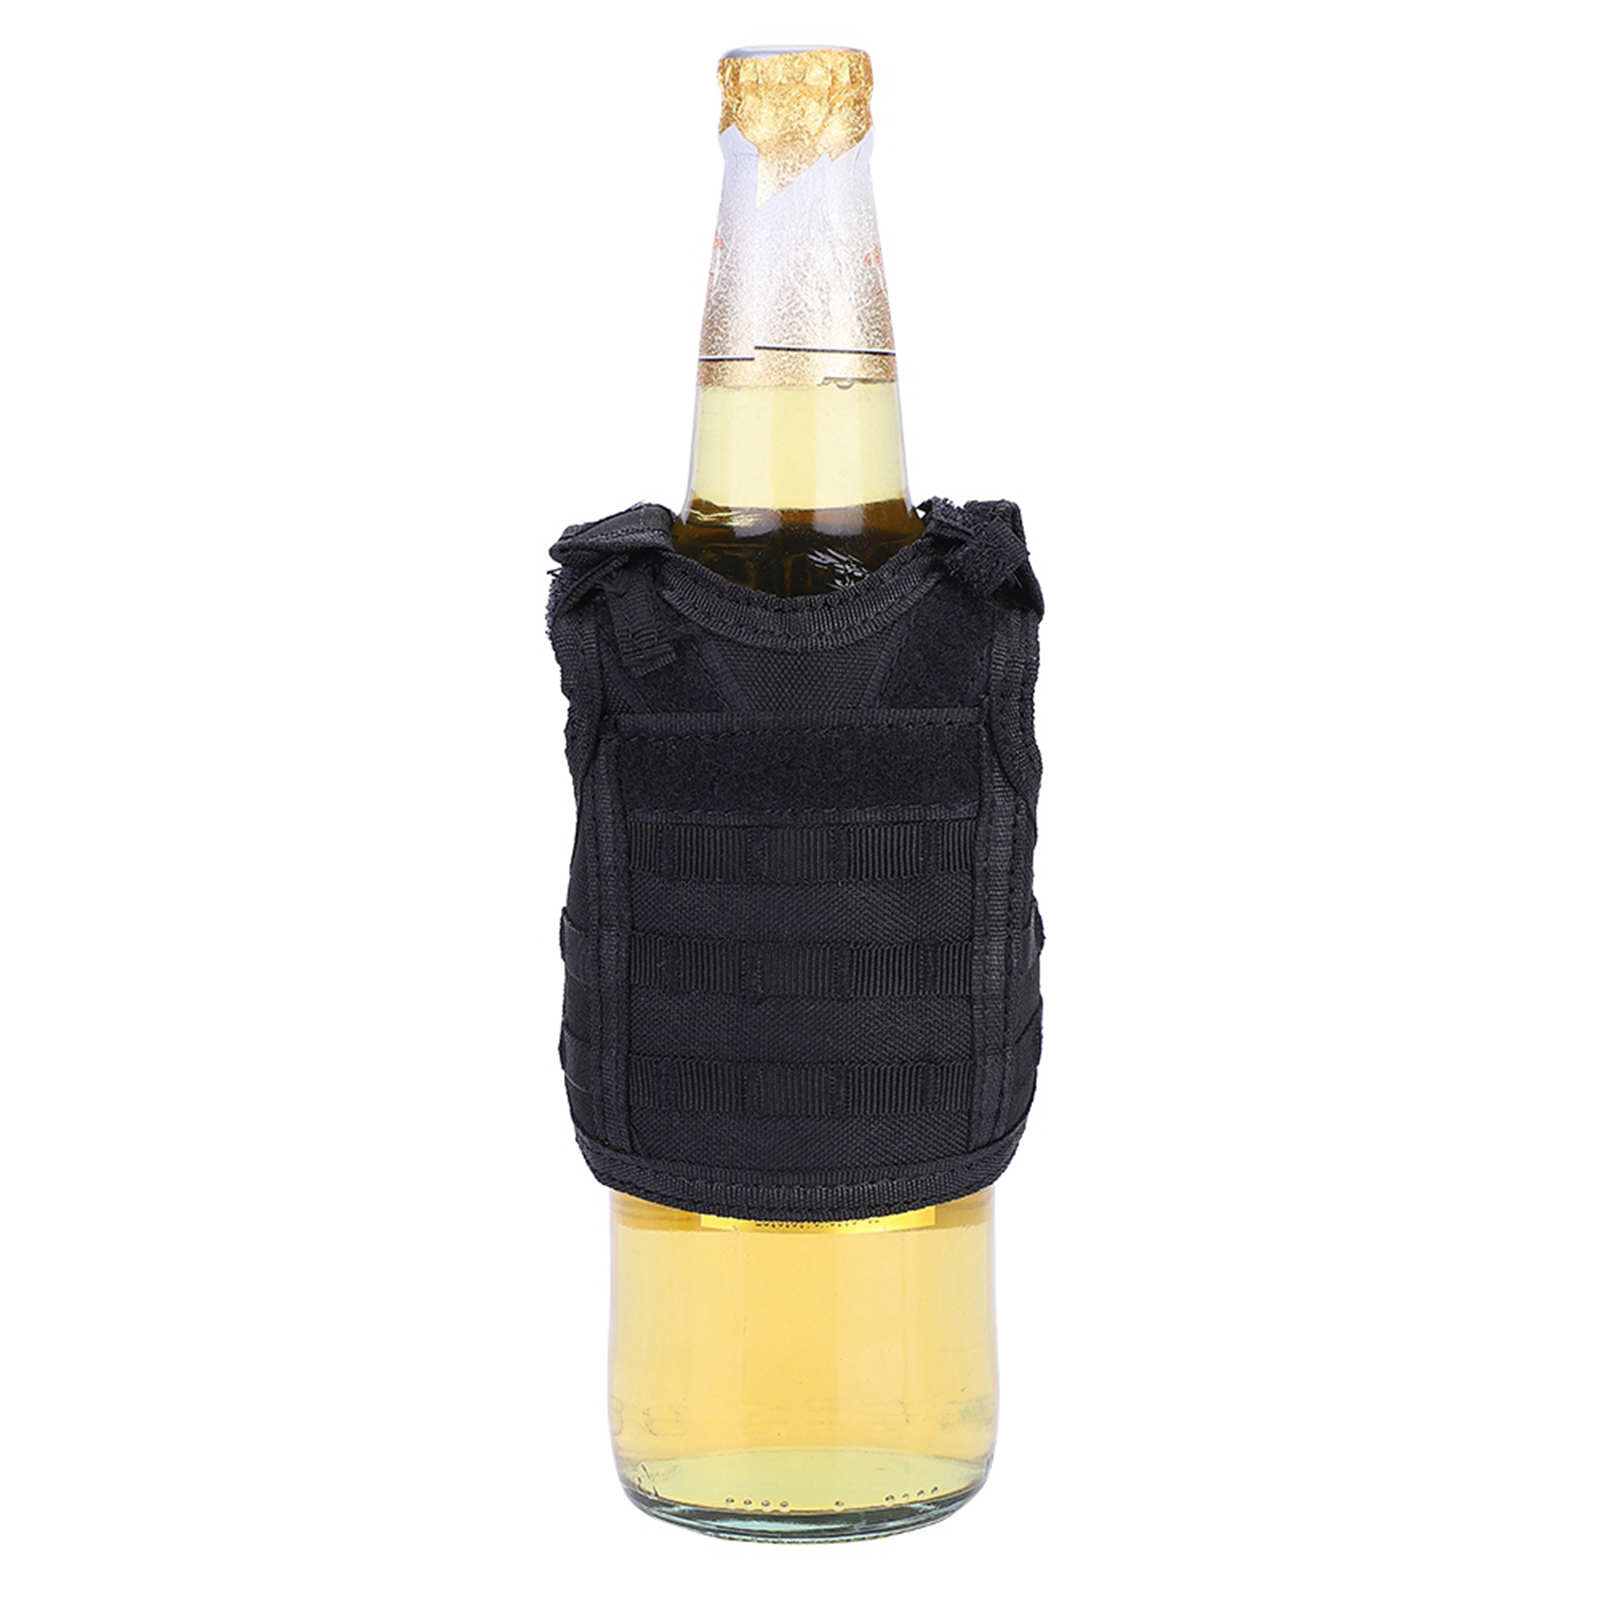 Mini-Military-Tactic-Beer-Water-Bottle-Can-Vest-Carrier-Holder-Beverage-Cover thumbnail 19